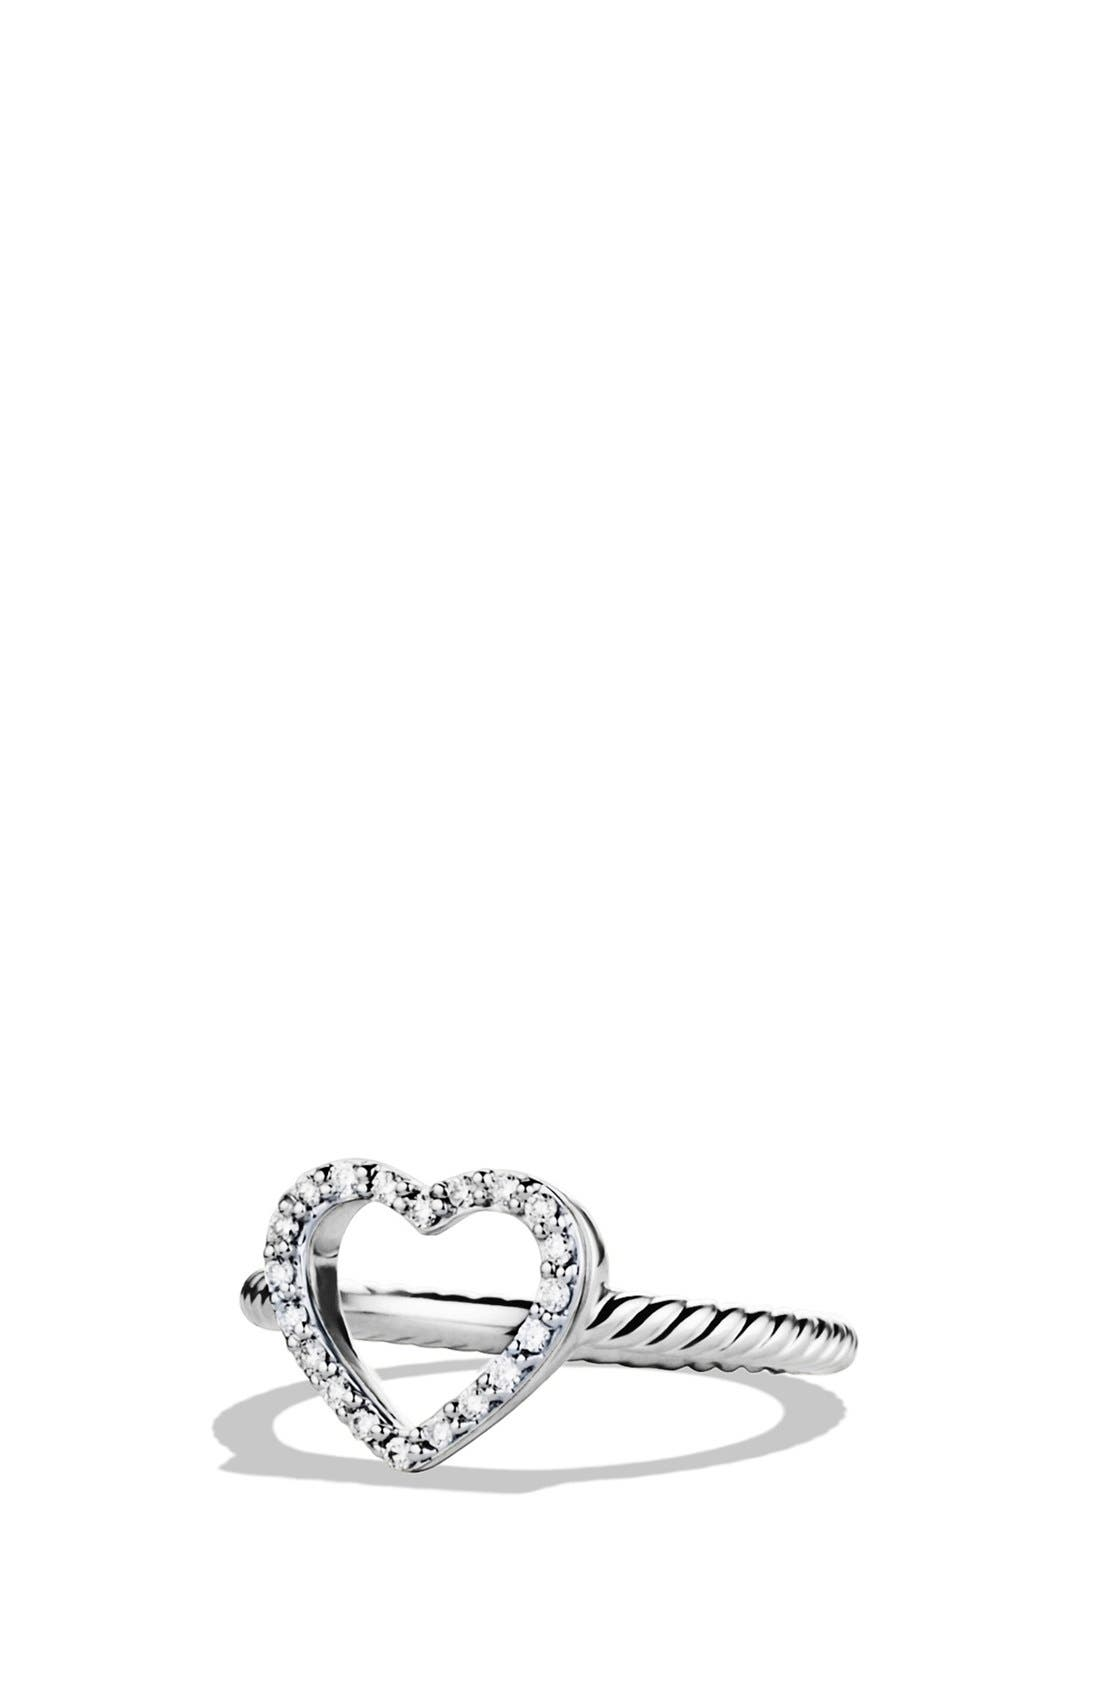 Alternate Image 1 Selected - David Yurman 'Cable Collectibles' Heart Ring with Diamonds